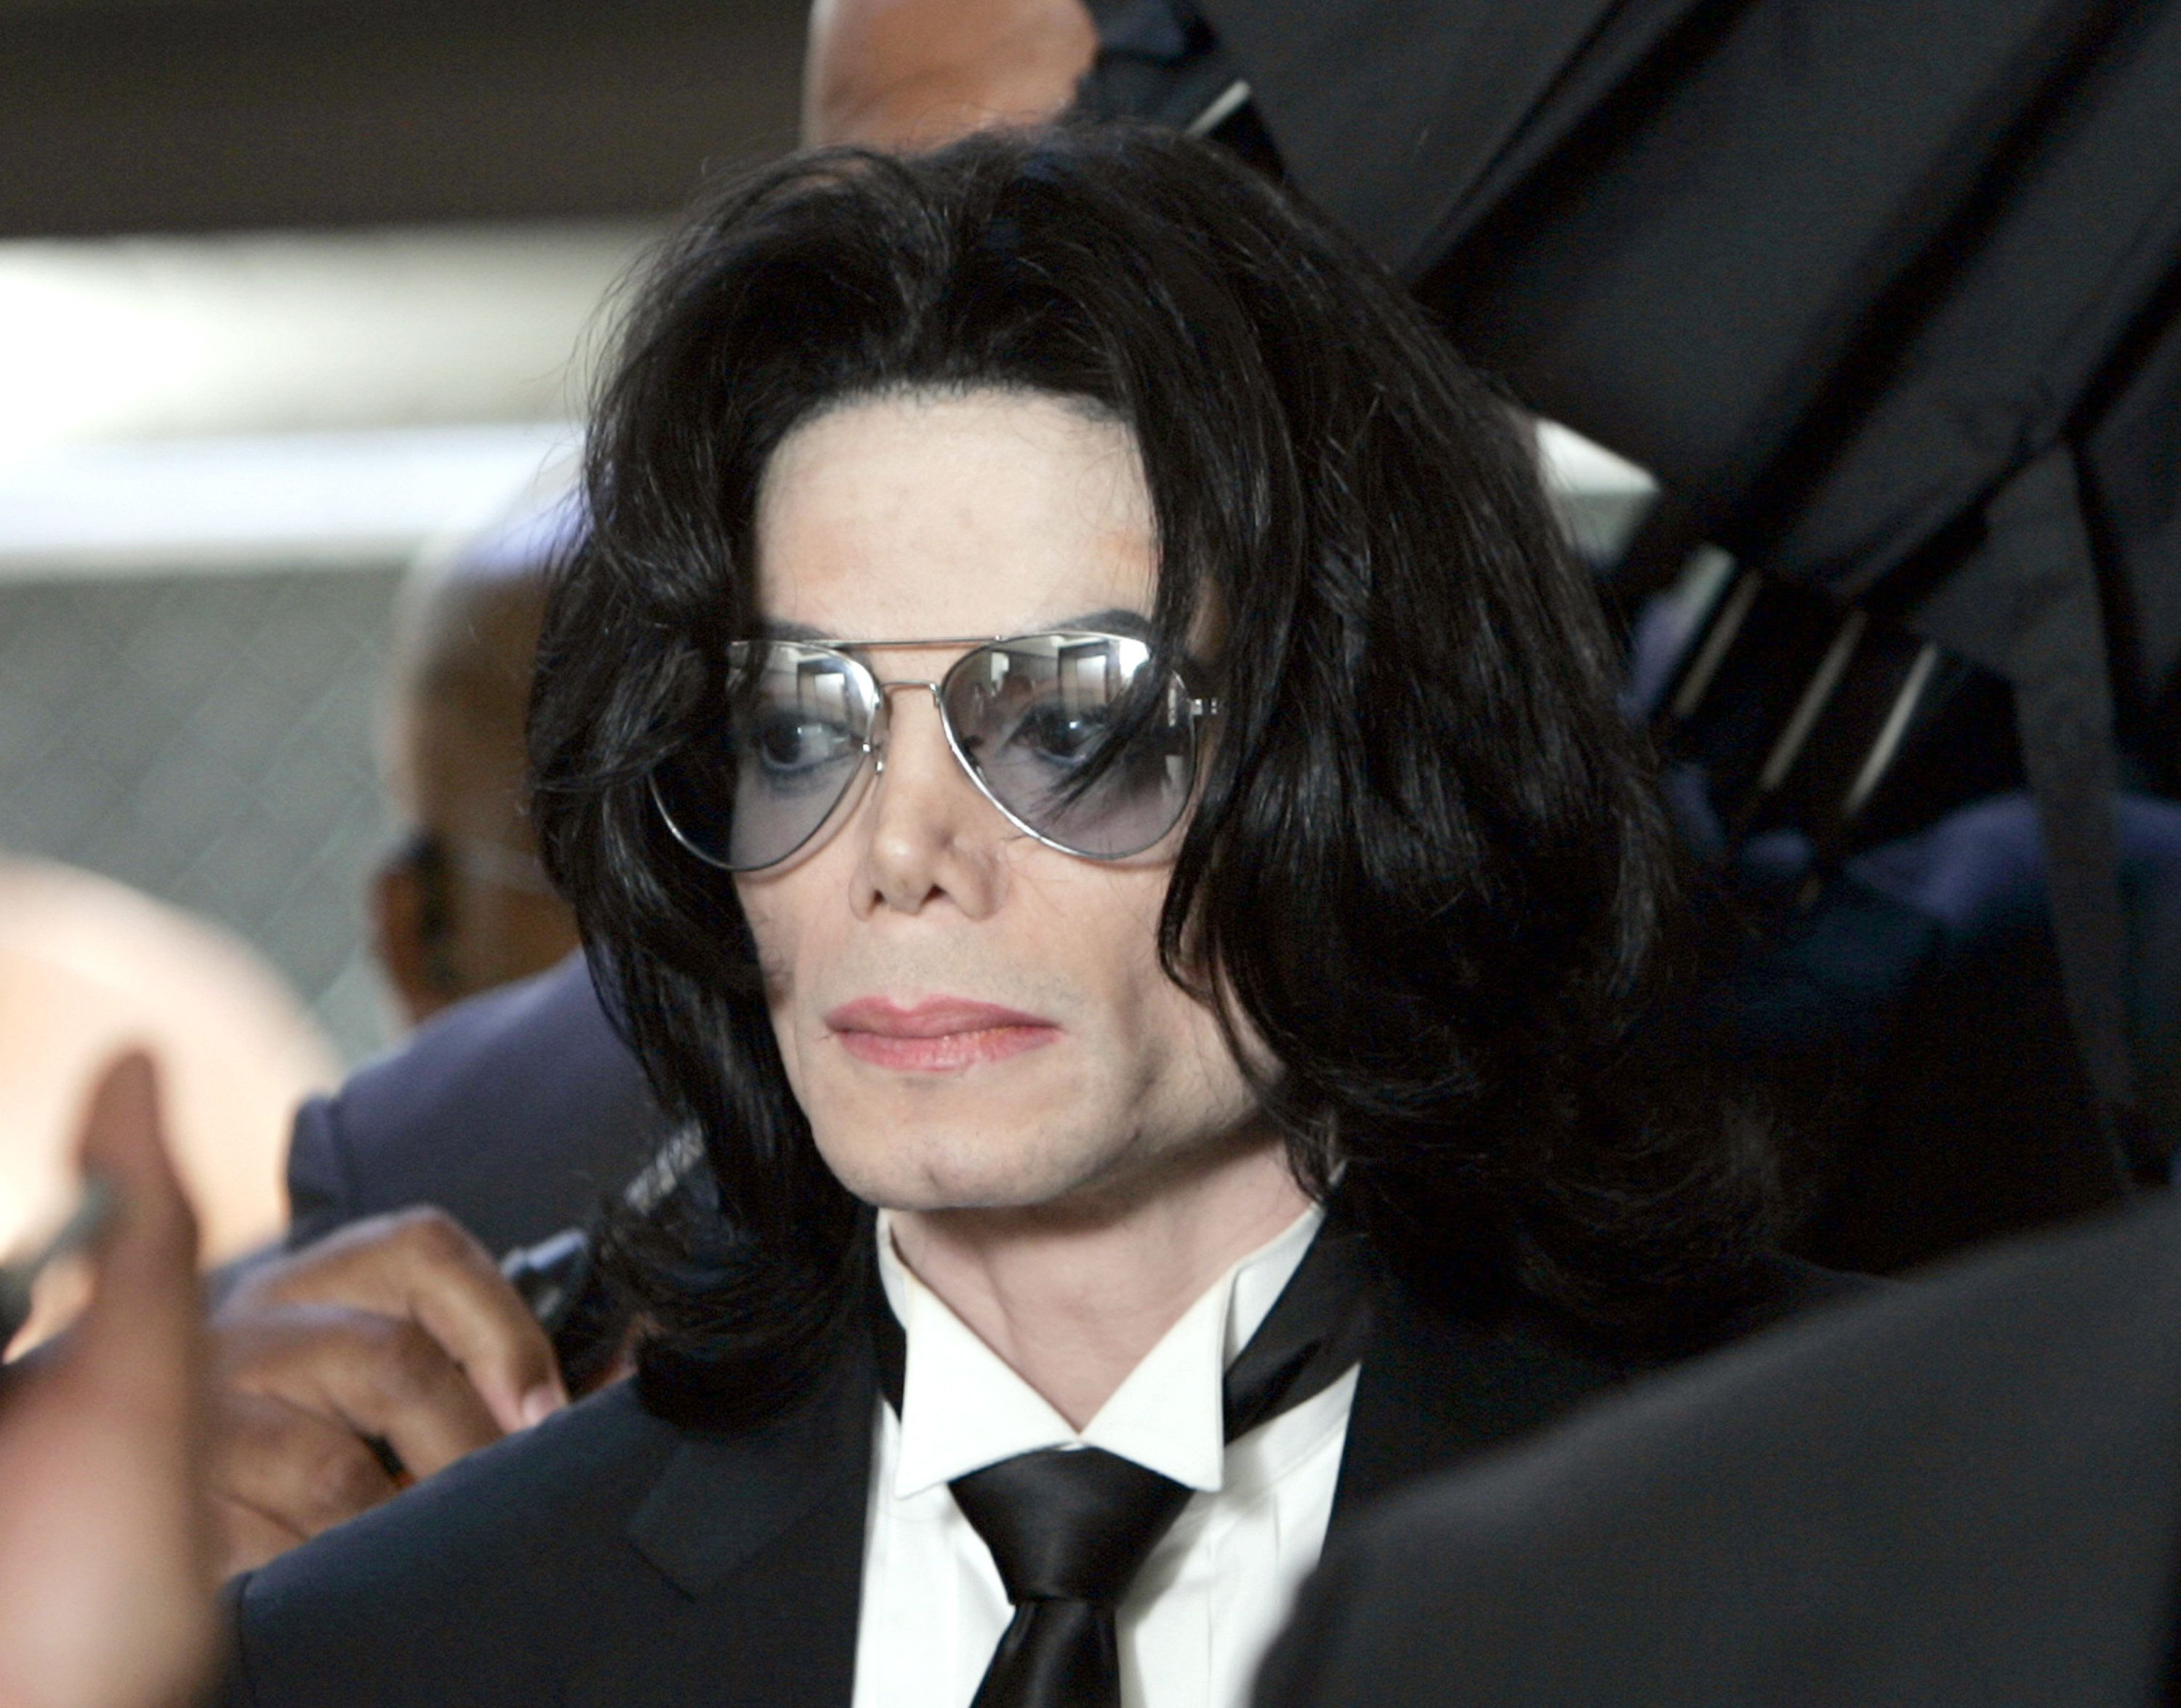 nudist child girls Michael Jackson Stockpiled Nude Images Of Children, According To Police  Report | HuffPost